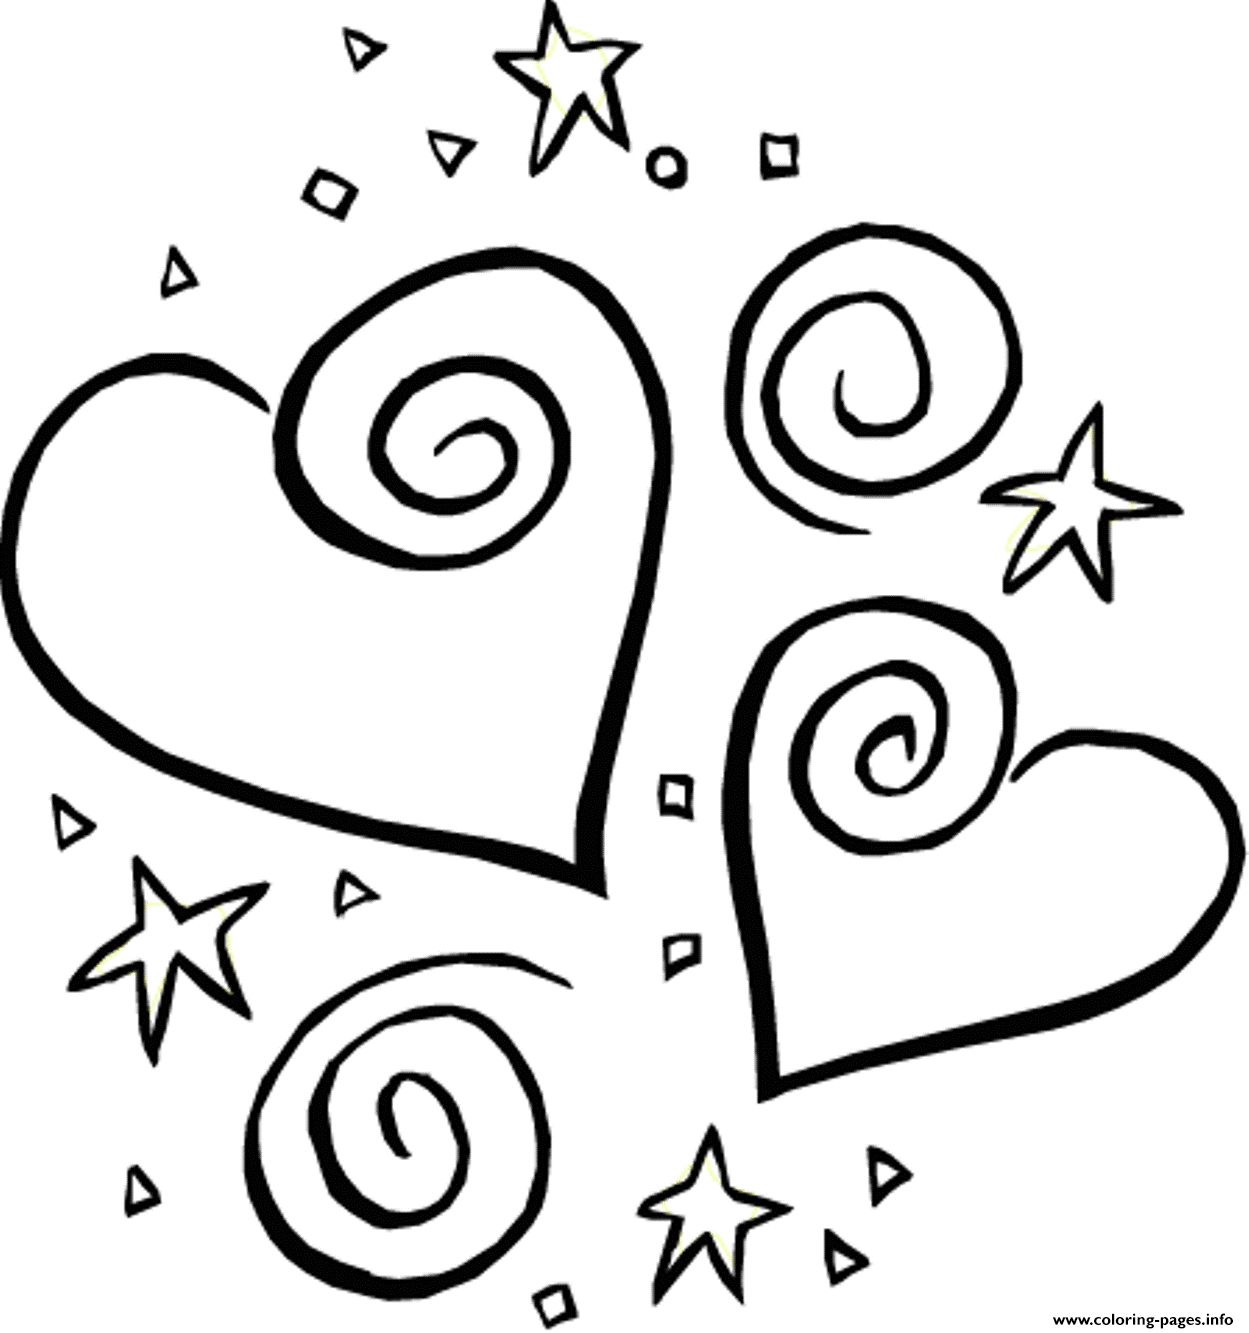 fnaf coloring pages printable - stars and heart valentine 316d printable coloring pages book 7171